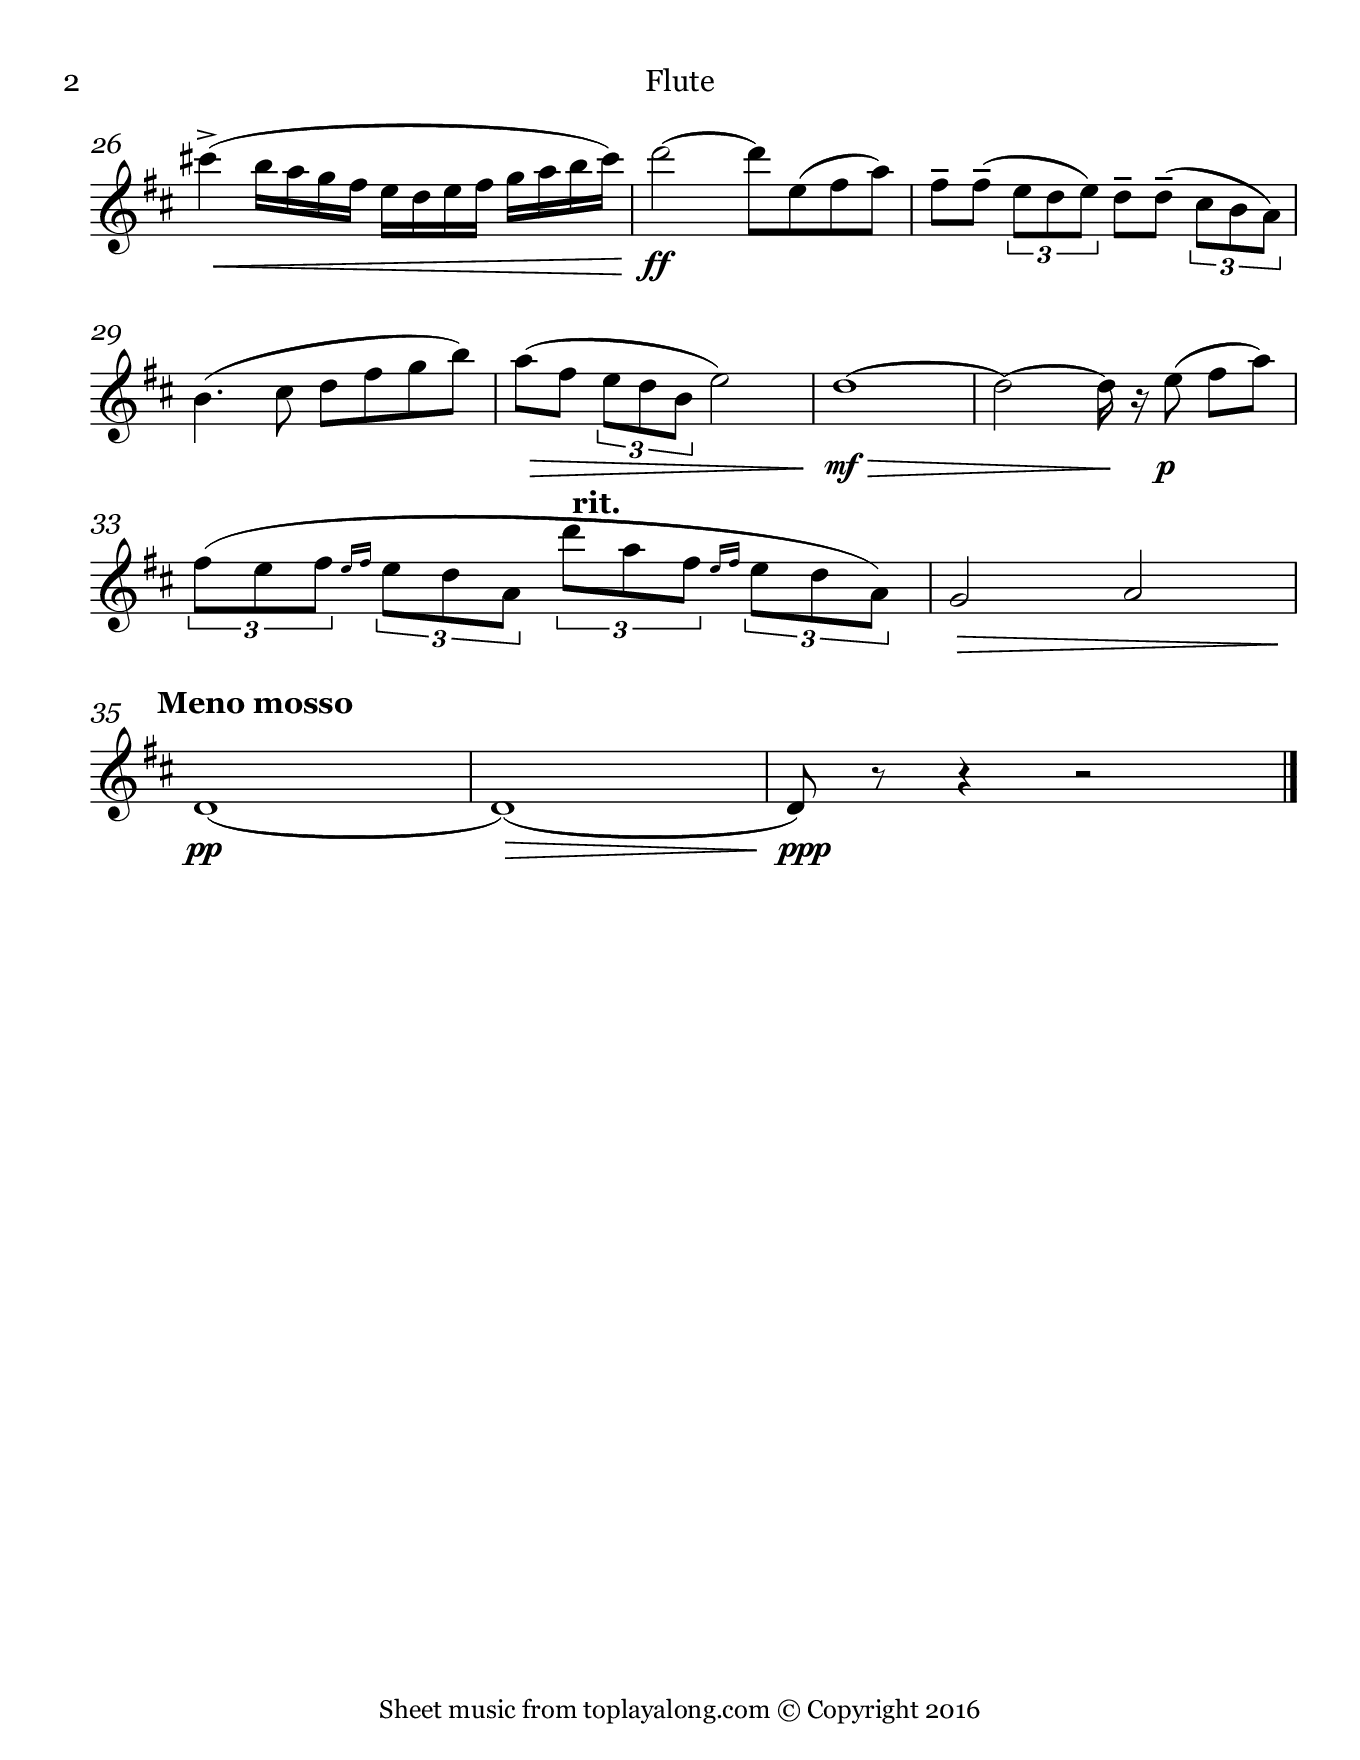 Concertino for Flute Op. 107 (Theme) by Chaminade. Sheet music for Flute, page 2.